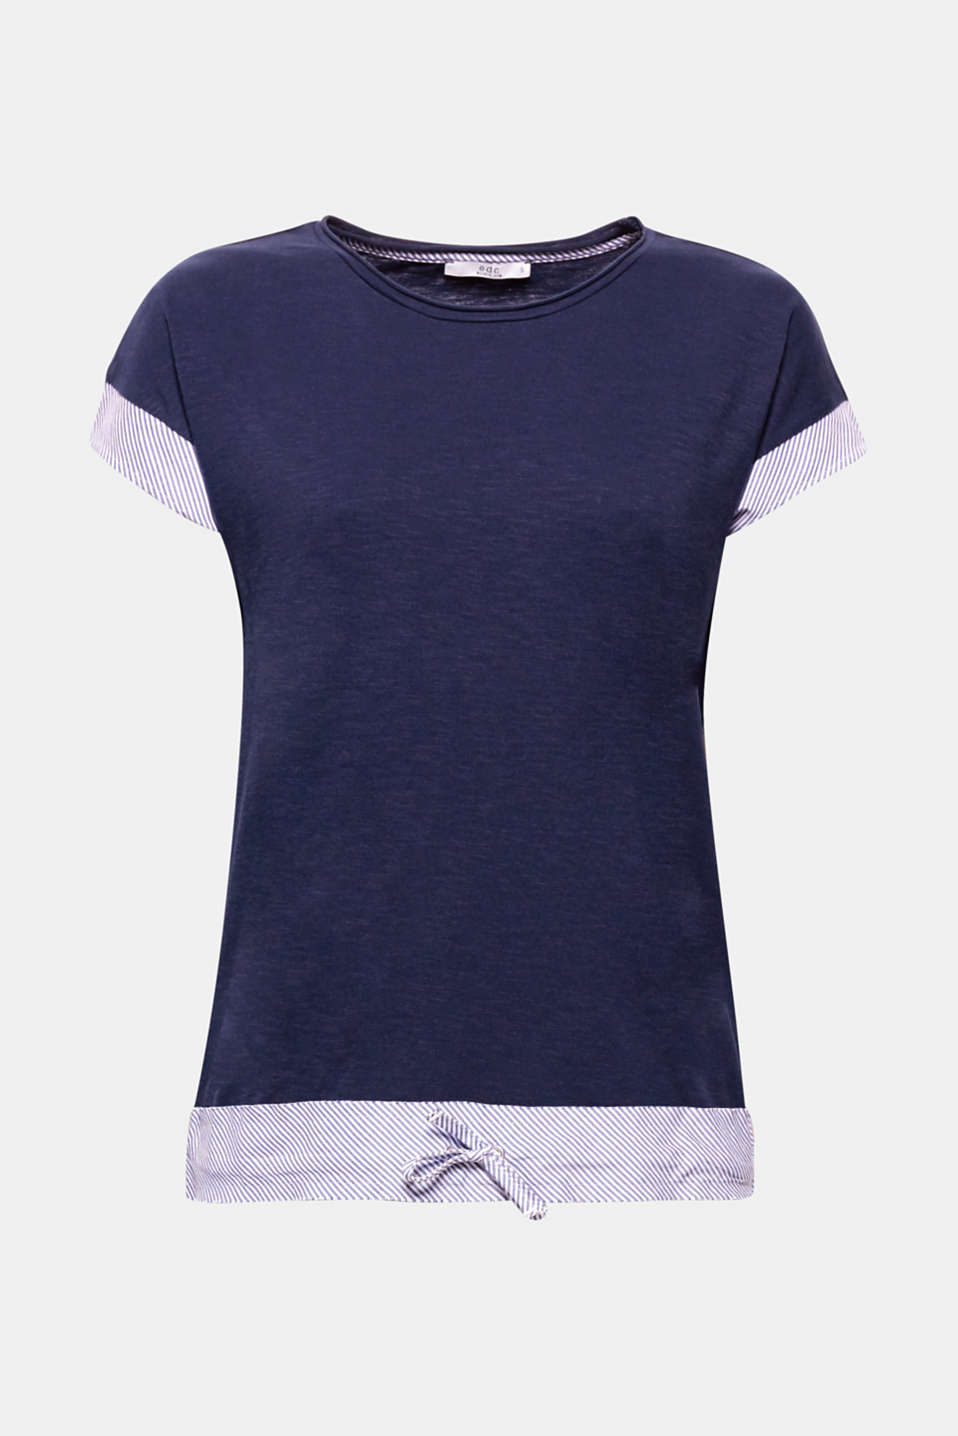 The striped cloth appliqué and drawstring hem give this airy, textured T-shirt a new nautical flair.